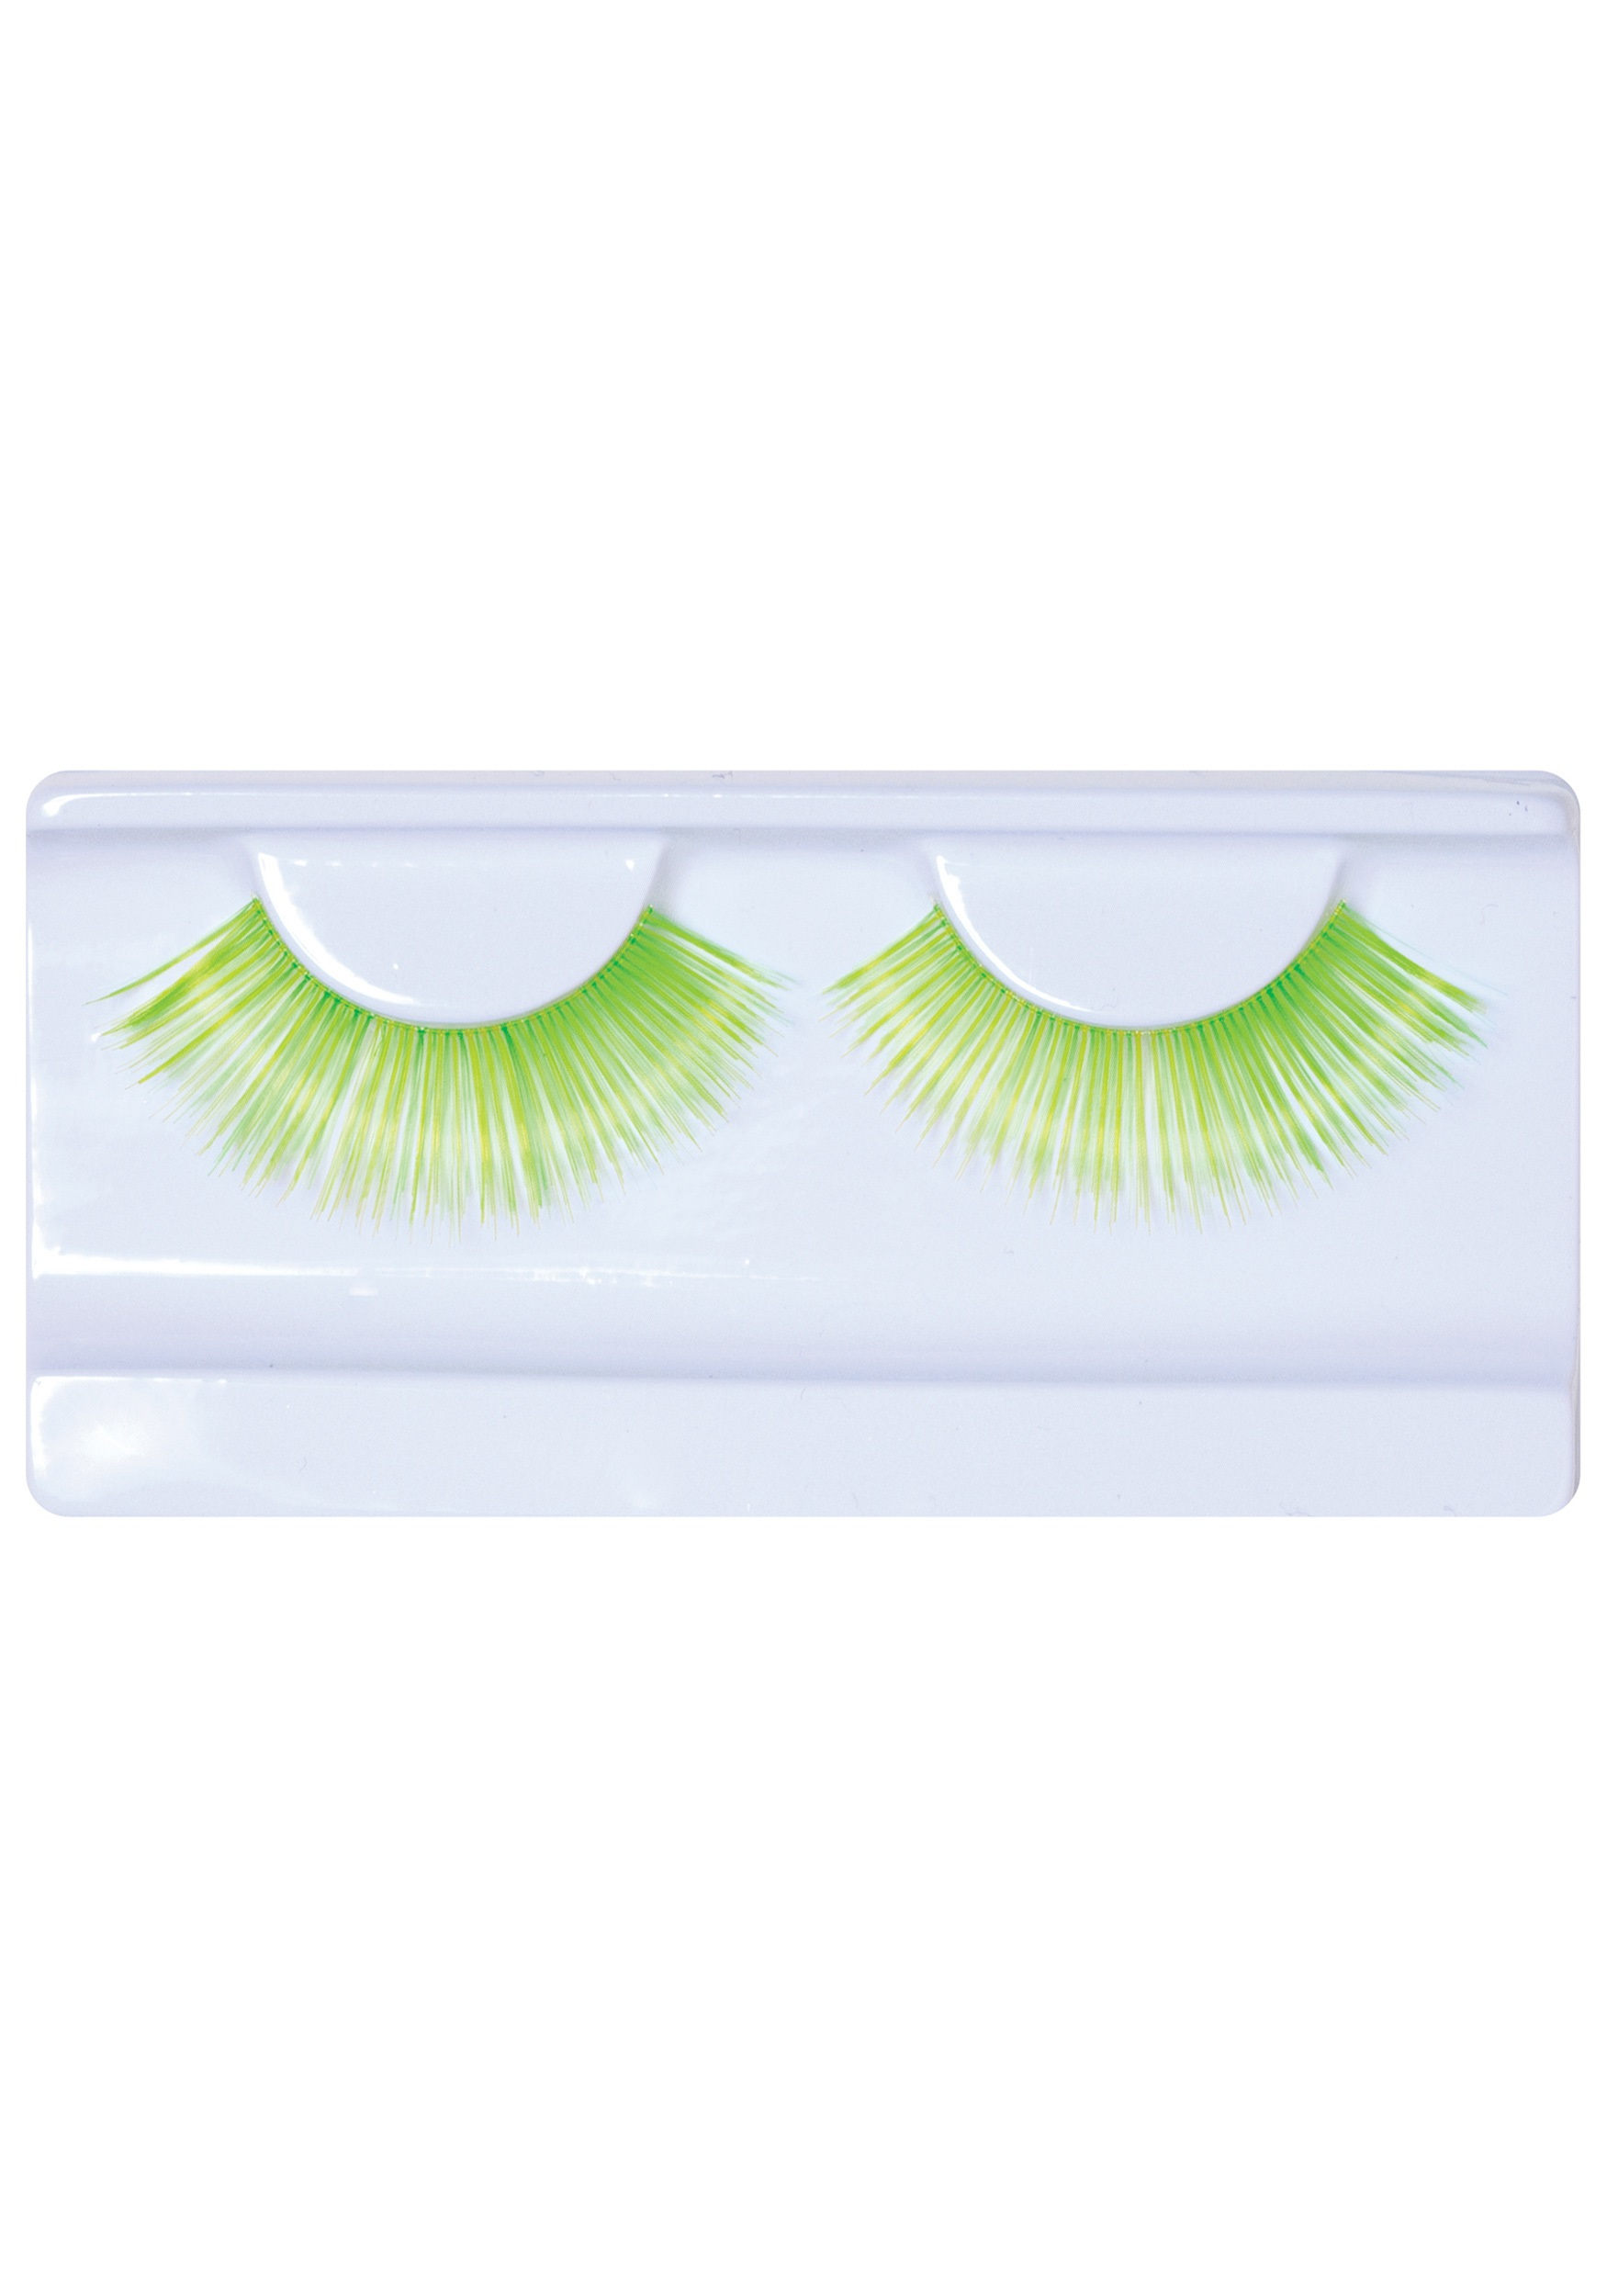 INOpets.com Anything for Pets Parents & Their Pets Screamin Green Crayola Eyelashes